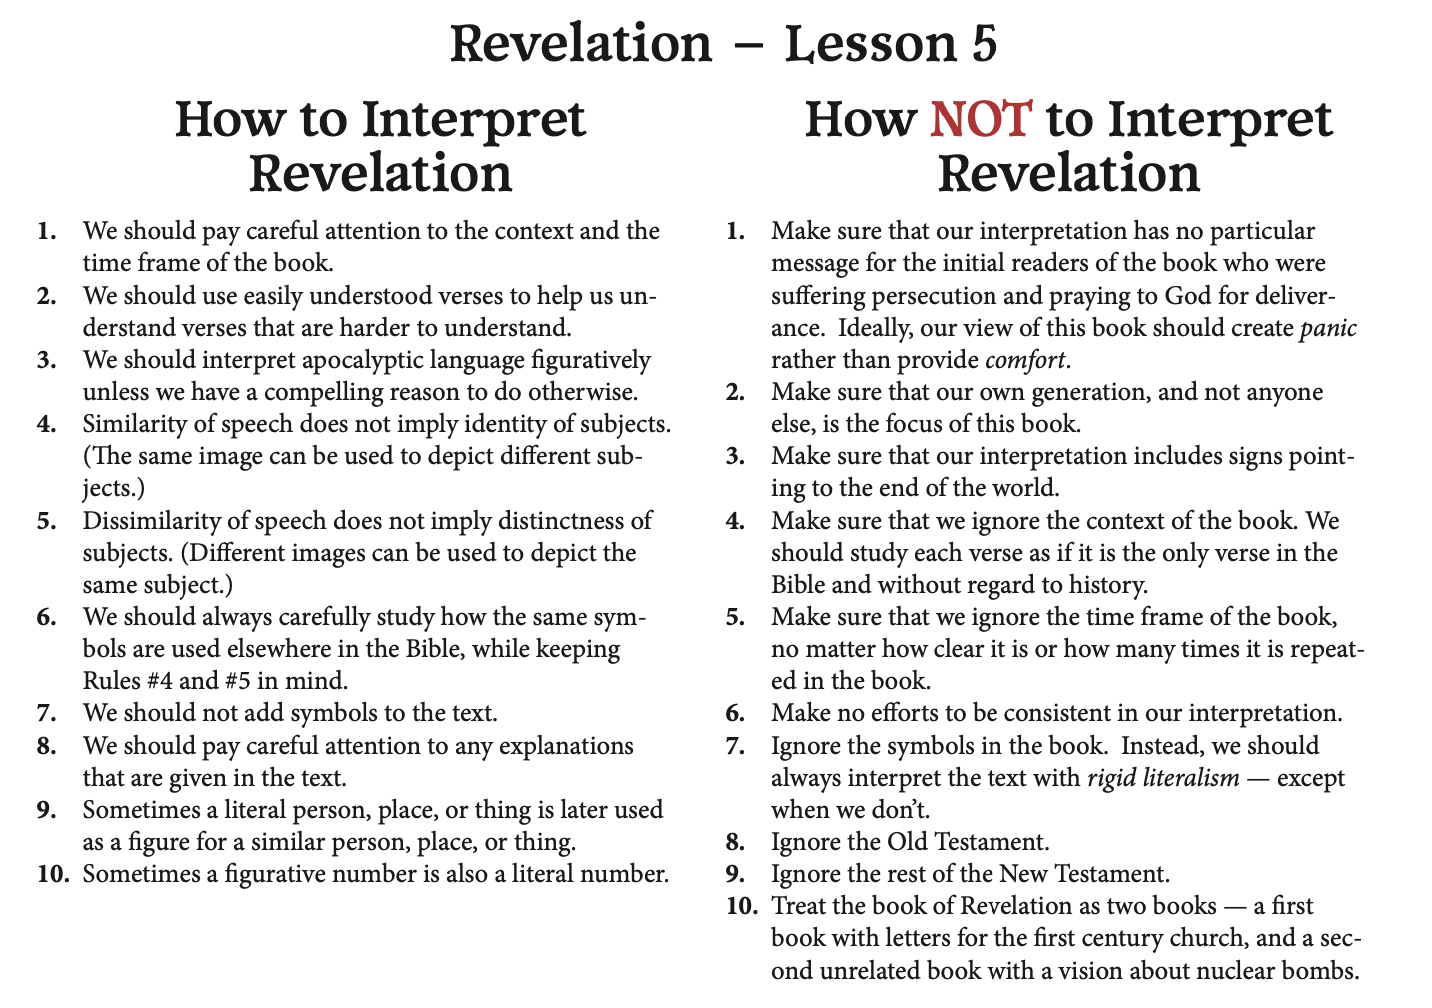 How NOT to Interpret Revelation